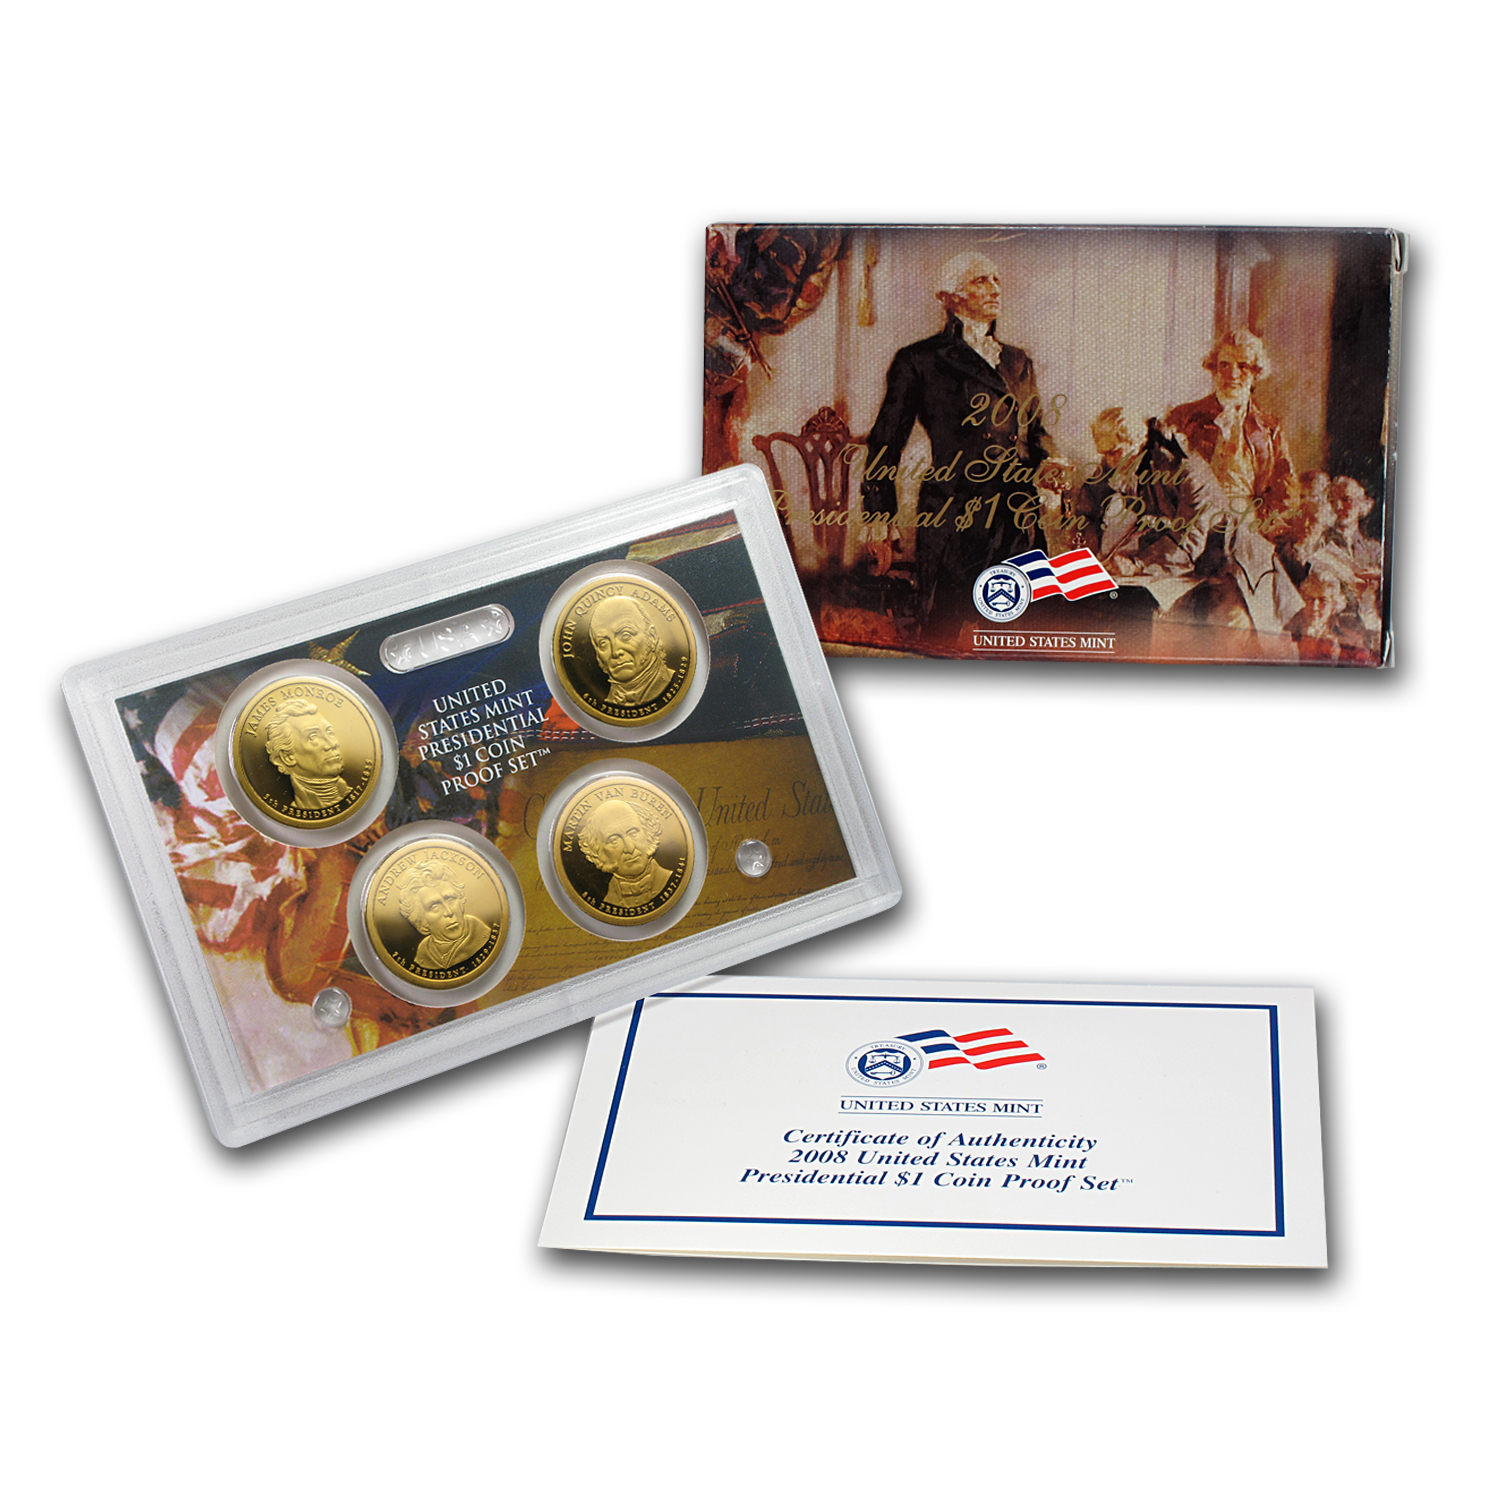 2008 Presidential Dollar Proof Set